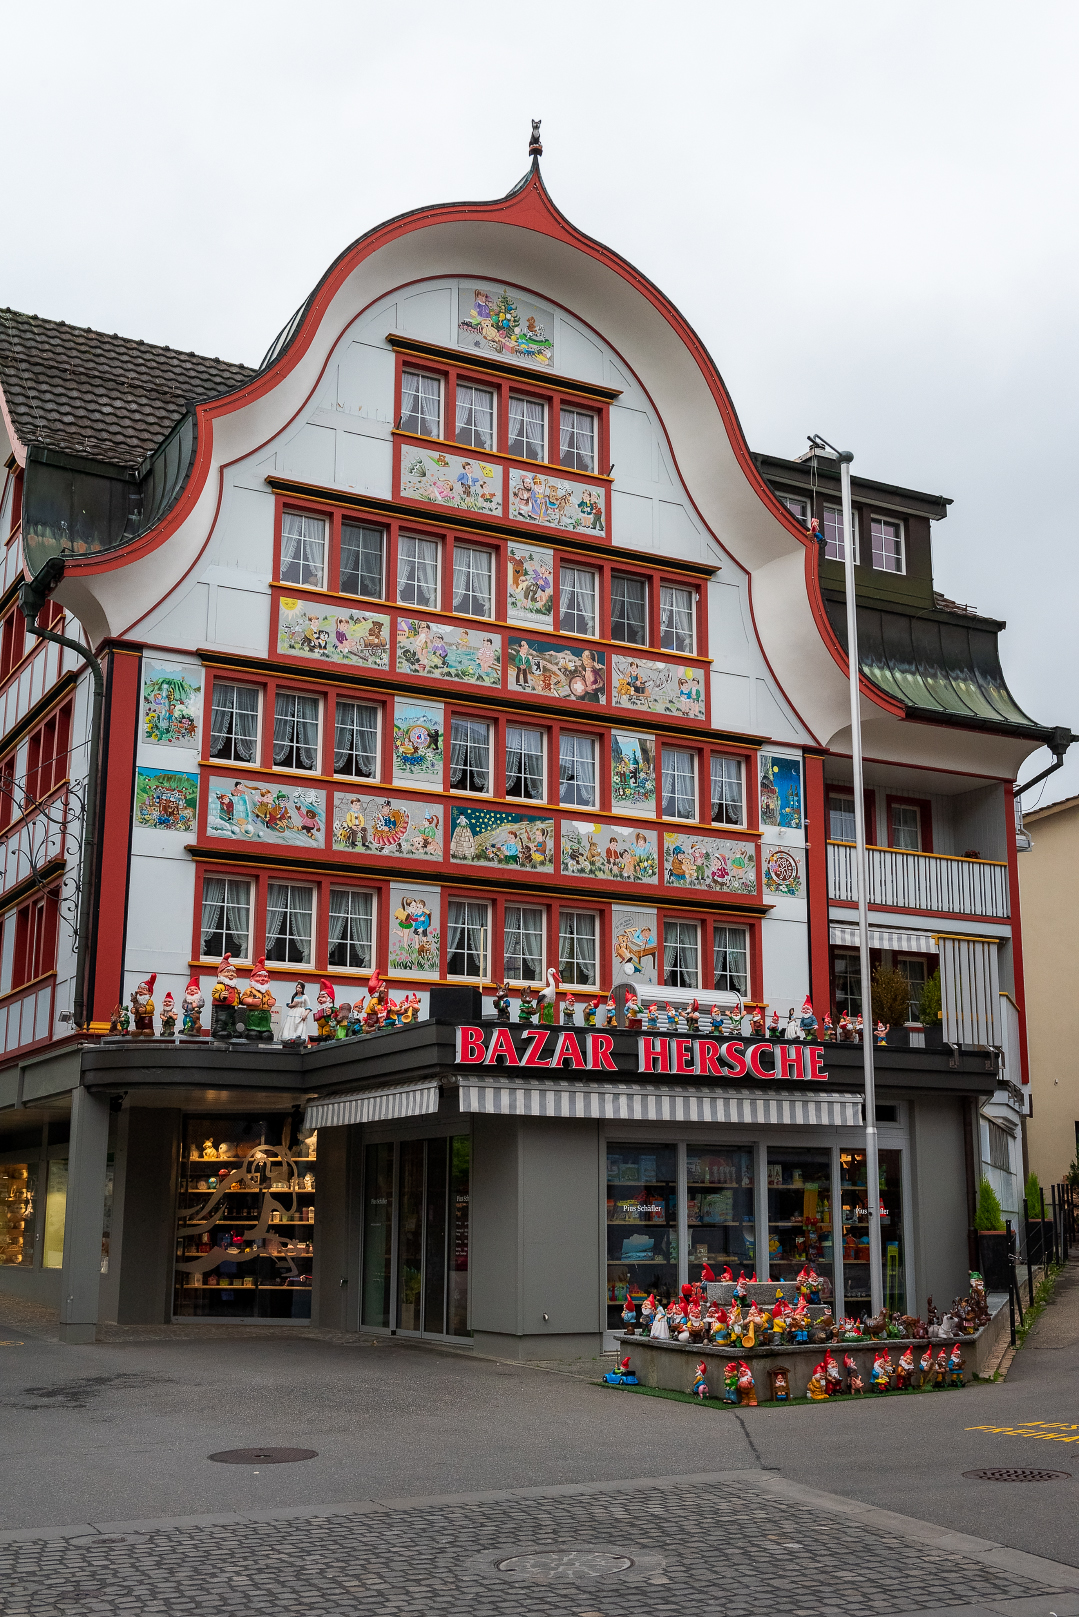 A colorful shopfront in Appenzell, Switzerland